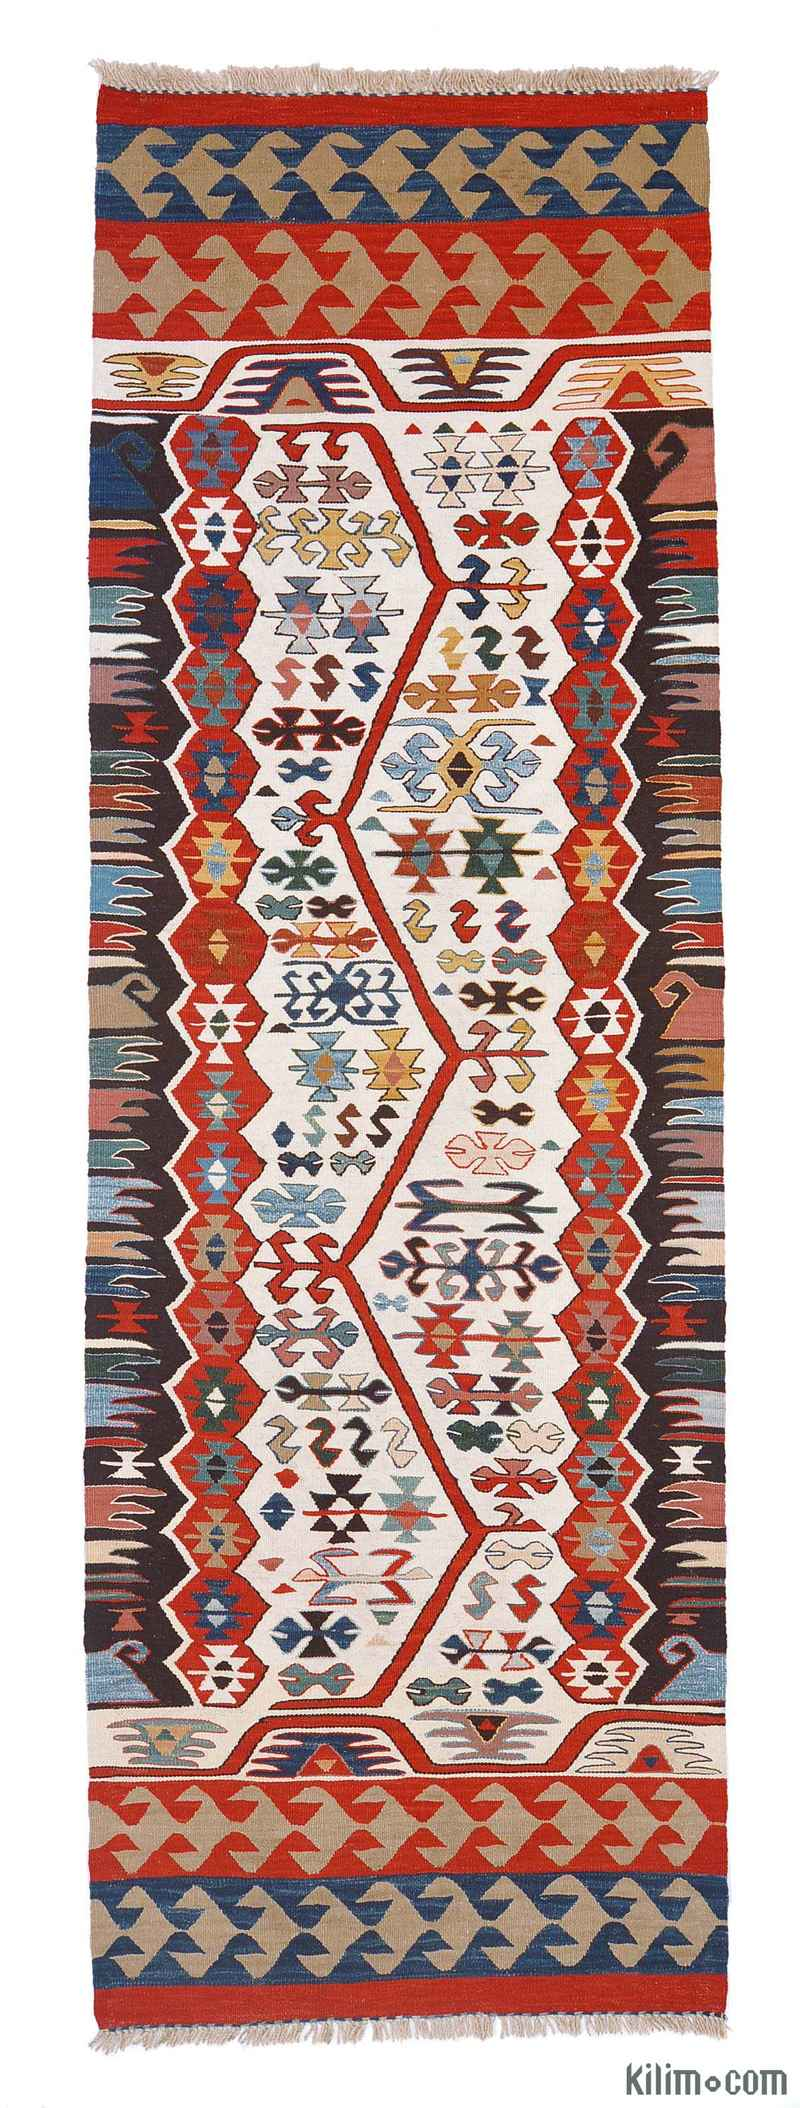 K0004801 Multicolor New Turkish Kilim Runner Rug